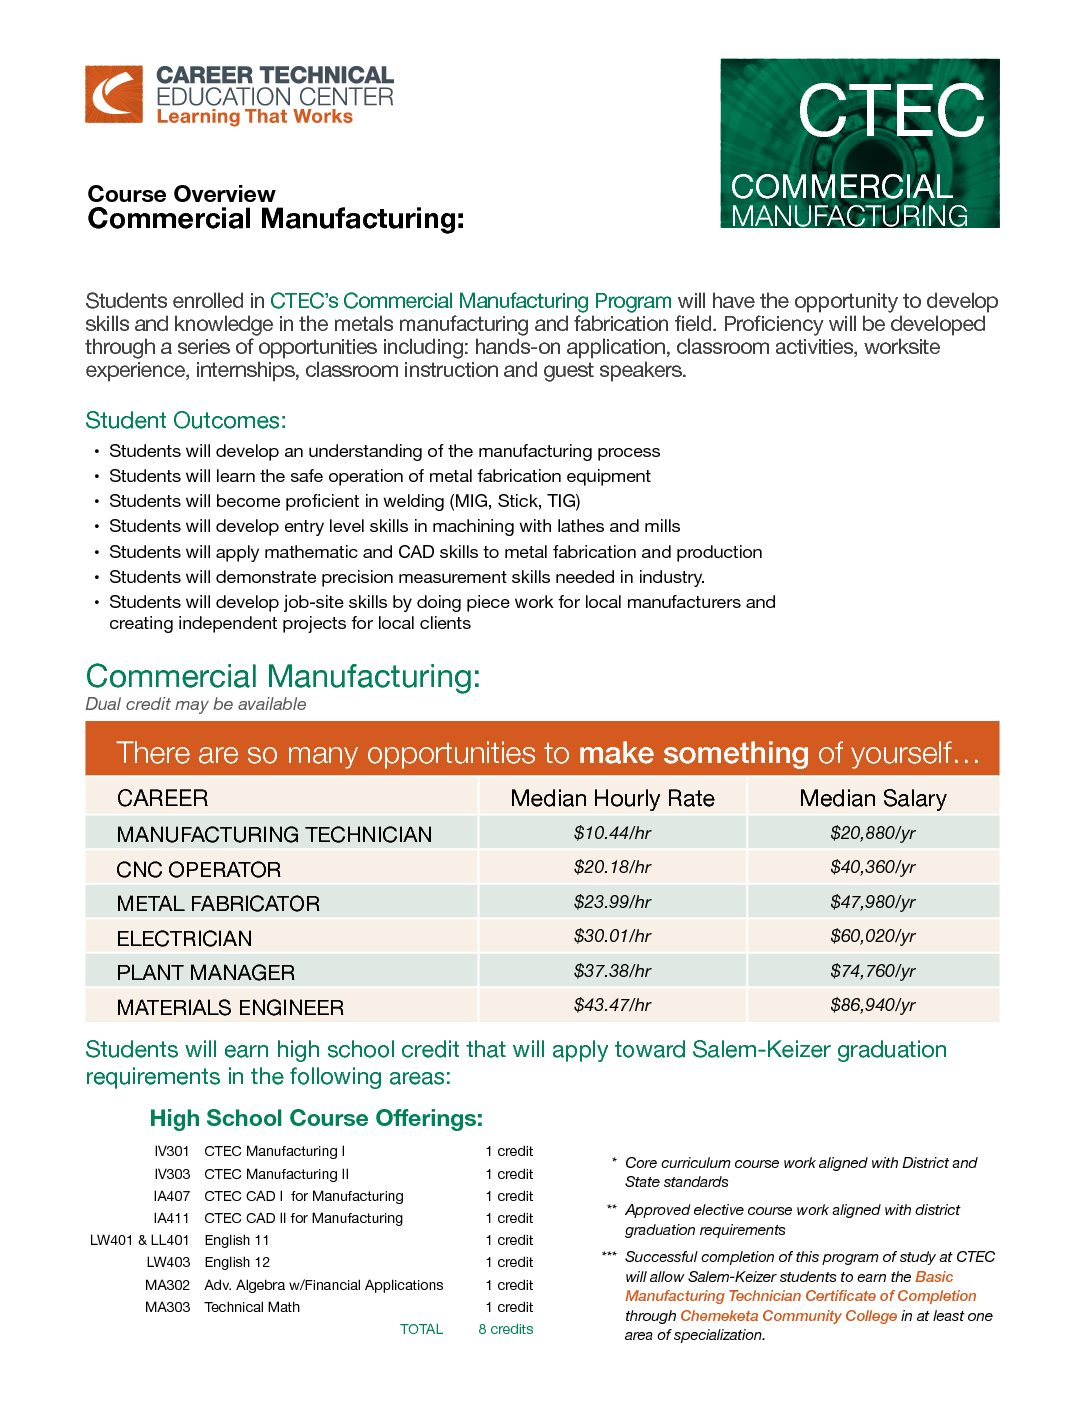 CTEC Commercial Manufacturing Overview